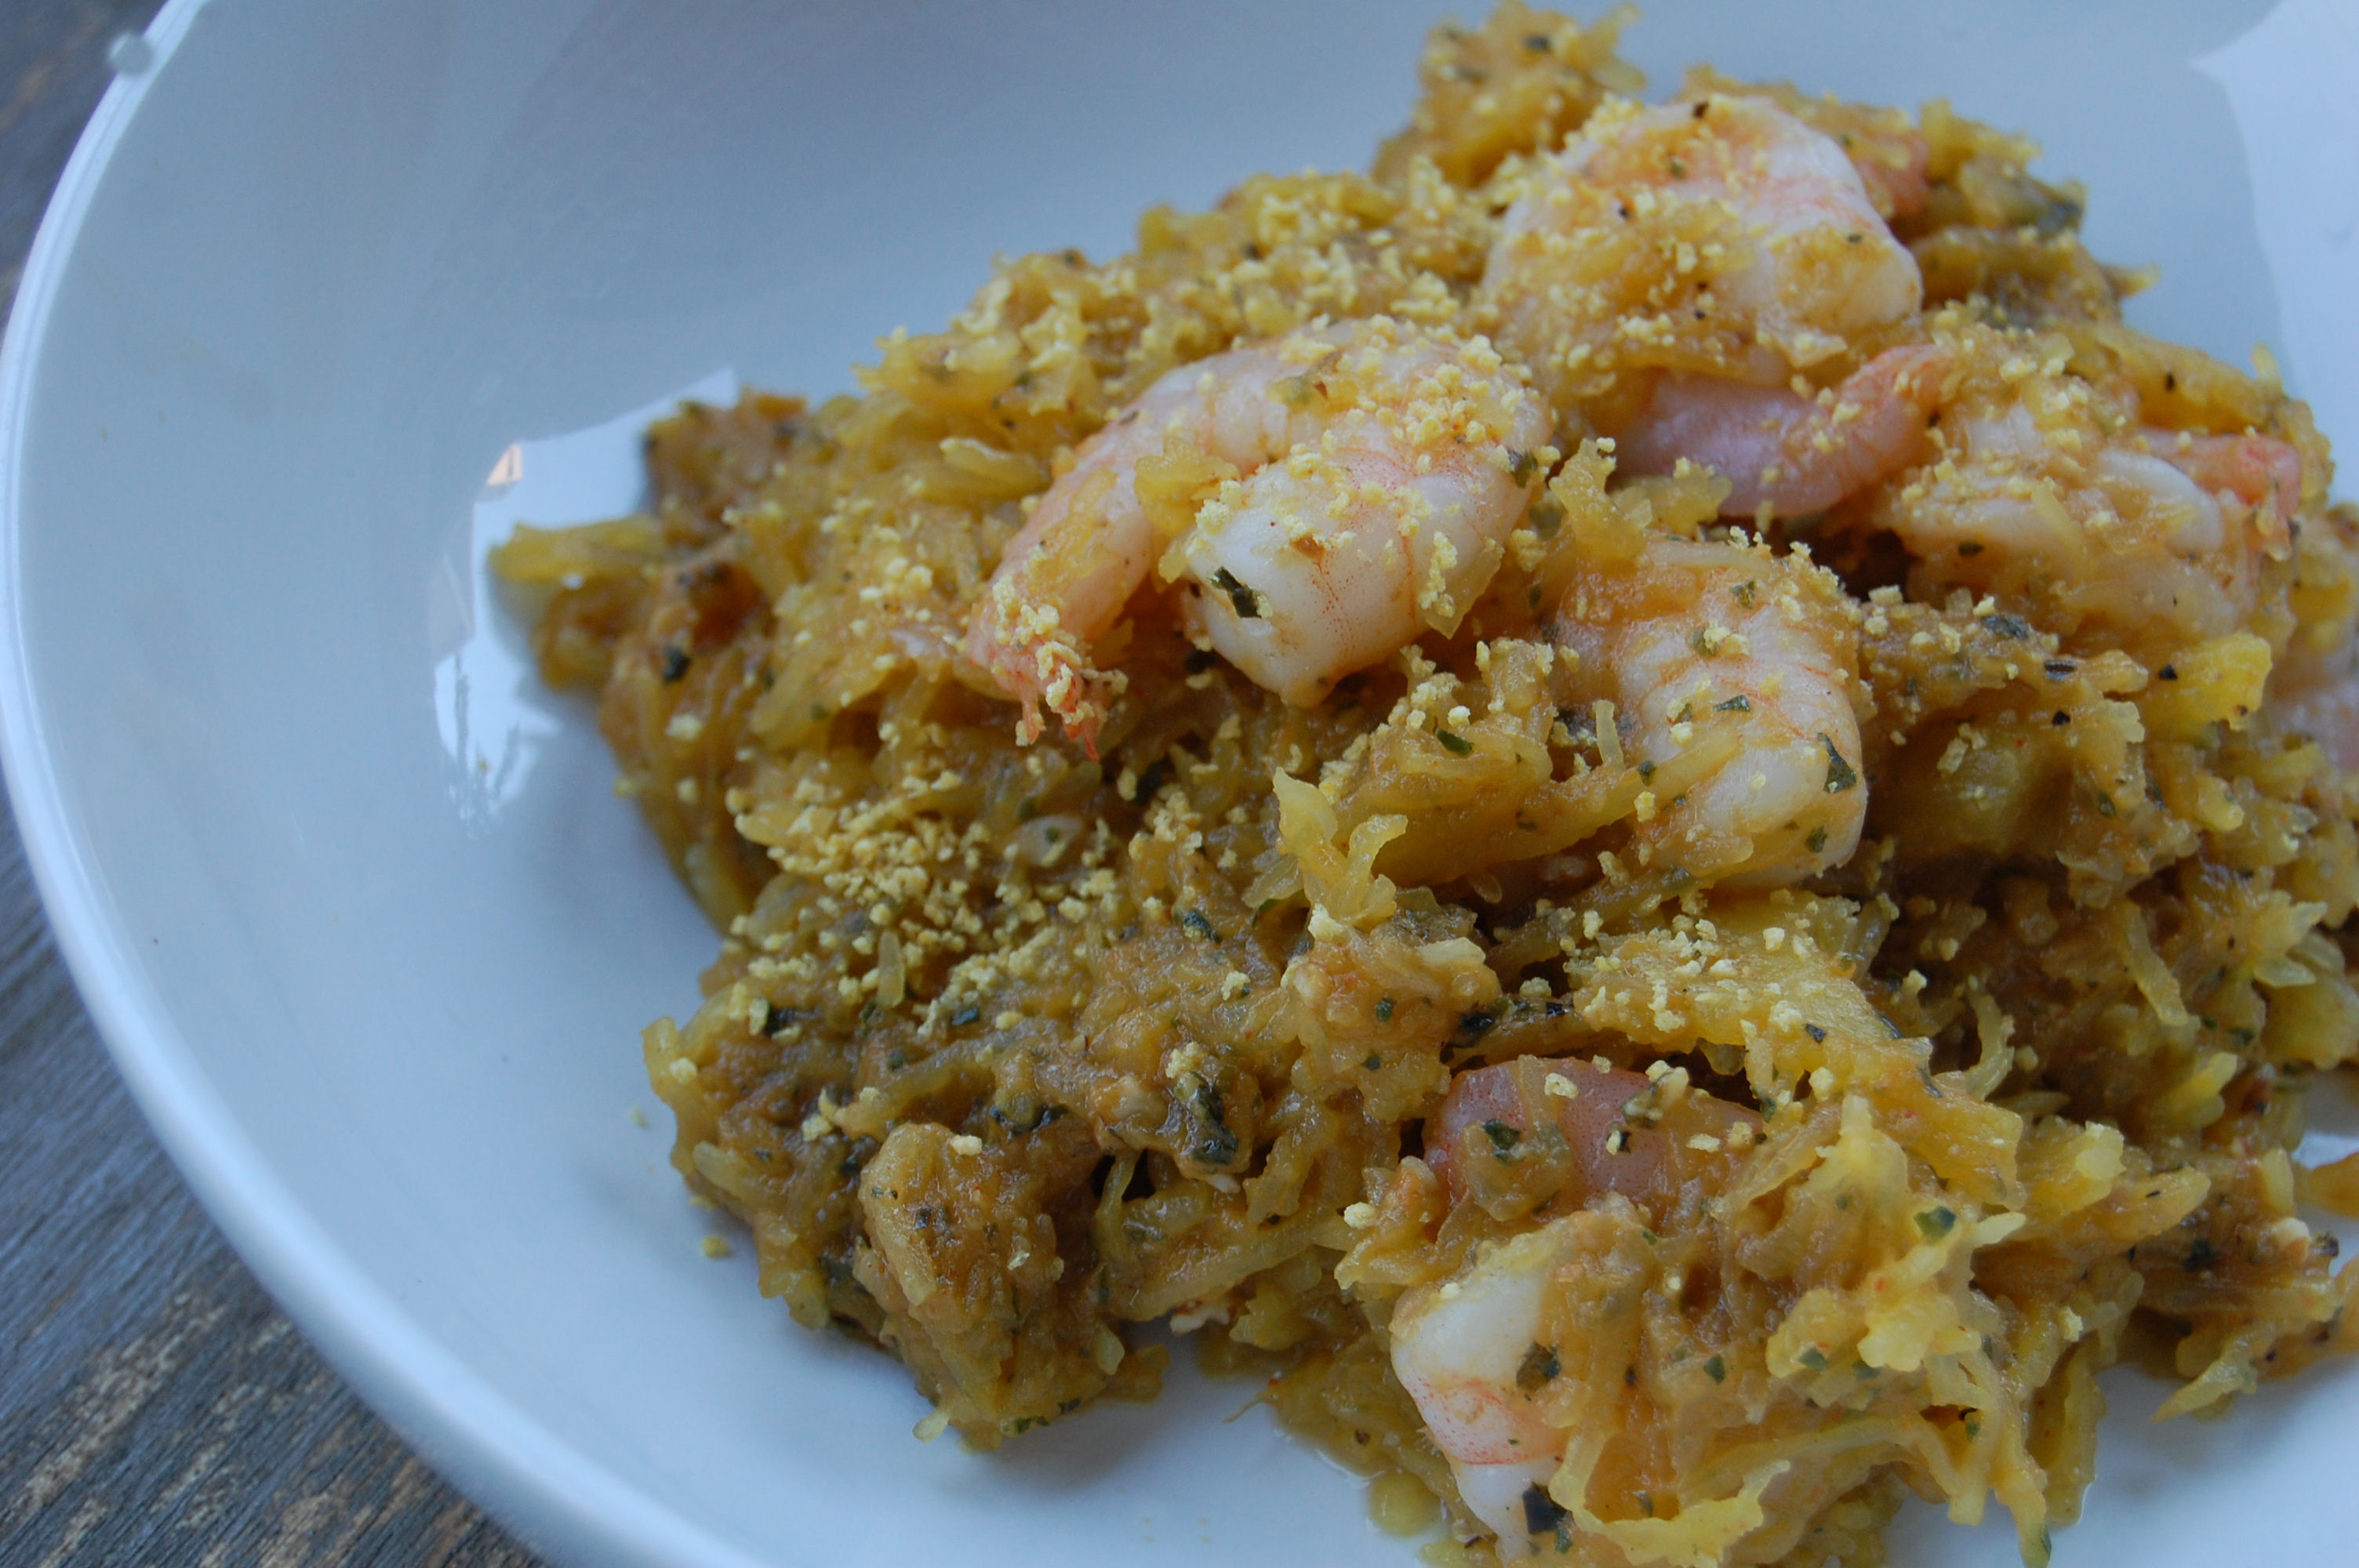 pumpkin-pesto-spaghetti-squash-with-roasted-shrimp-tate-bake-shop-giveaway